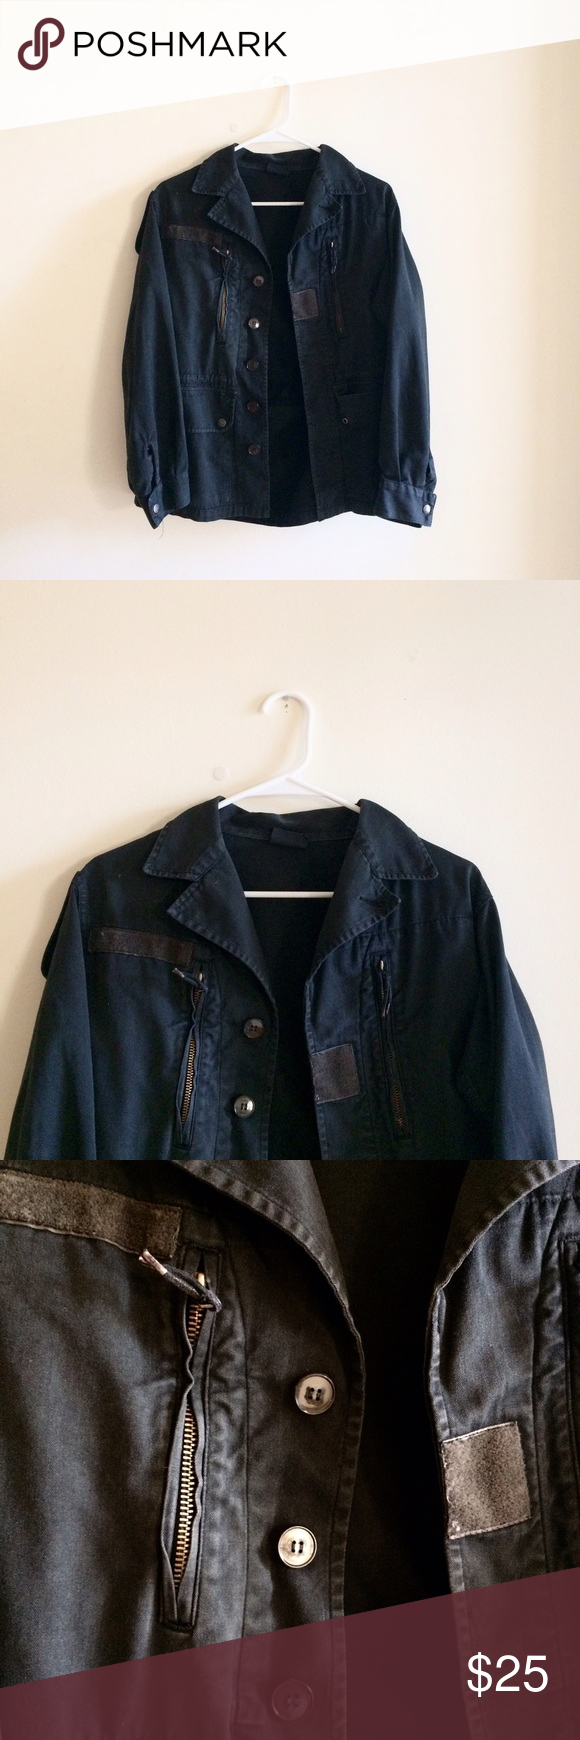 Black utility jacket Utility jacket from urban outfitters. Marked as large Urban Outfitters Jackets & Coats